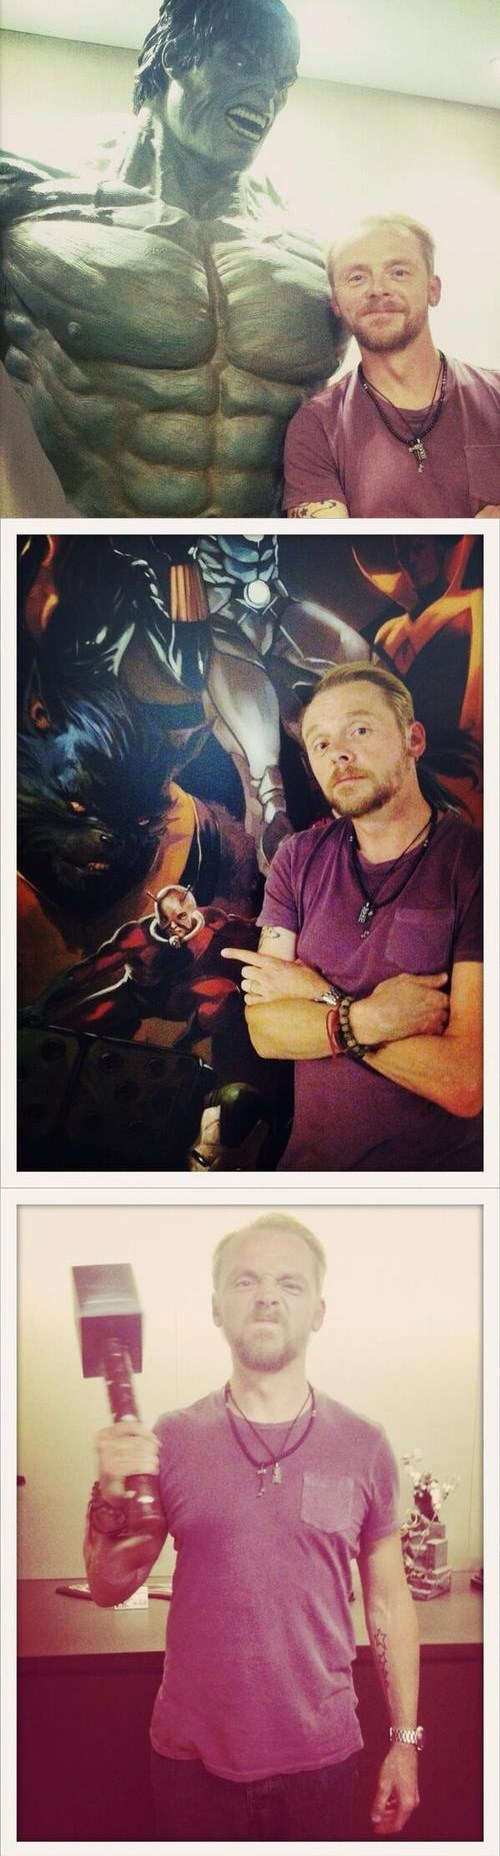 Simon Pegg's Day at Marvel